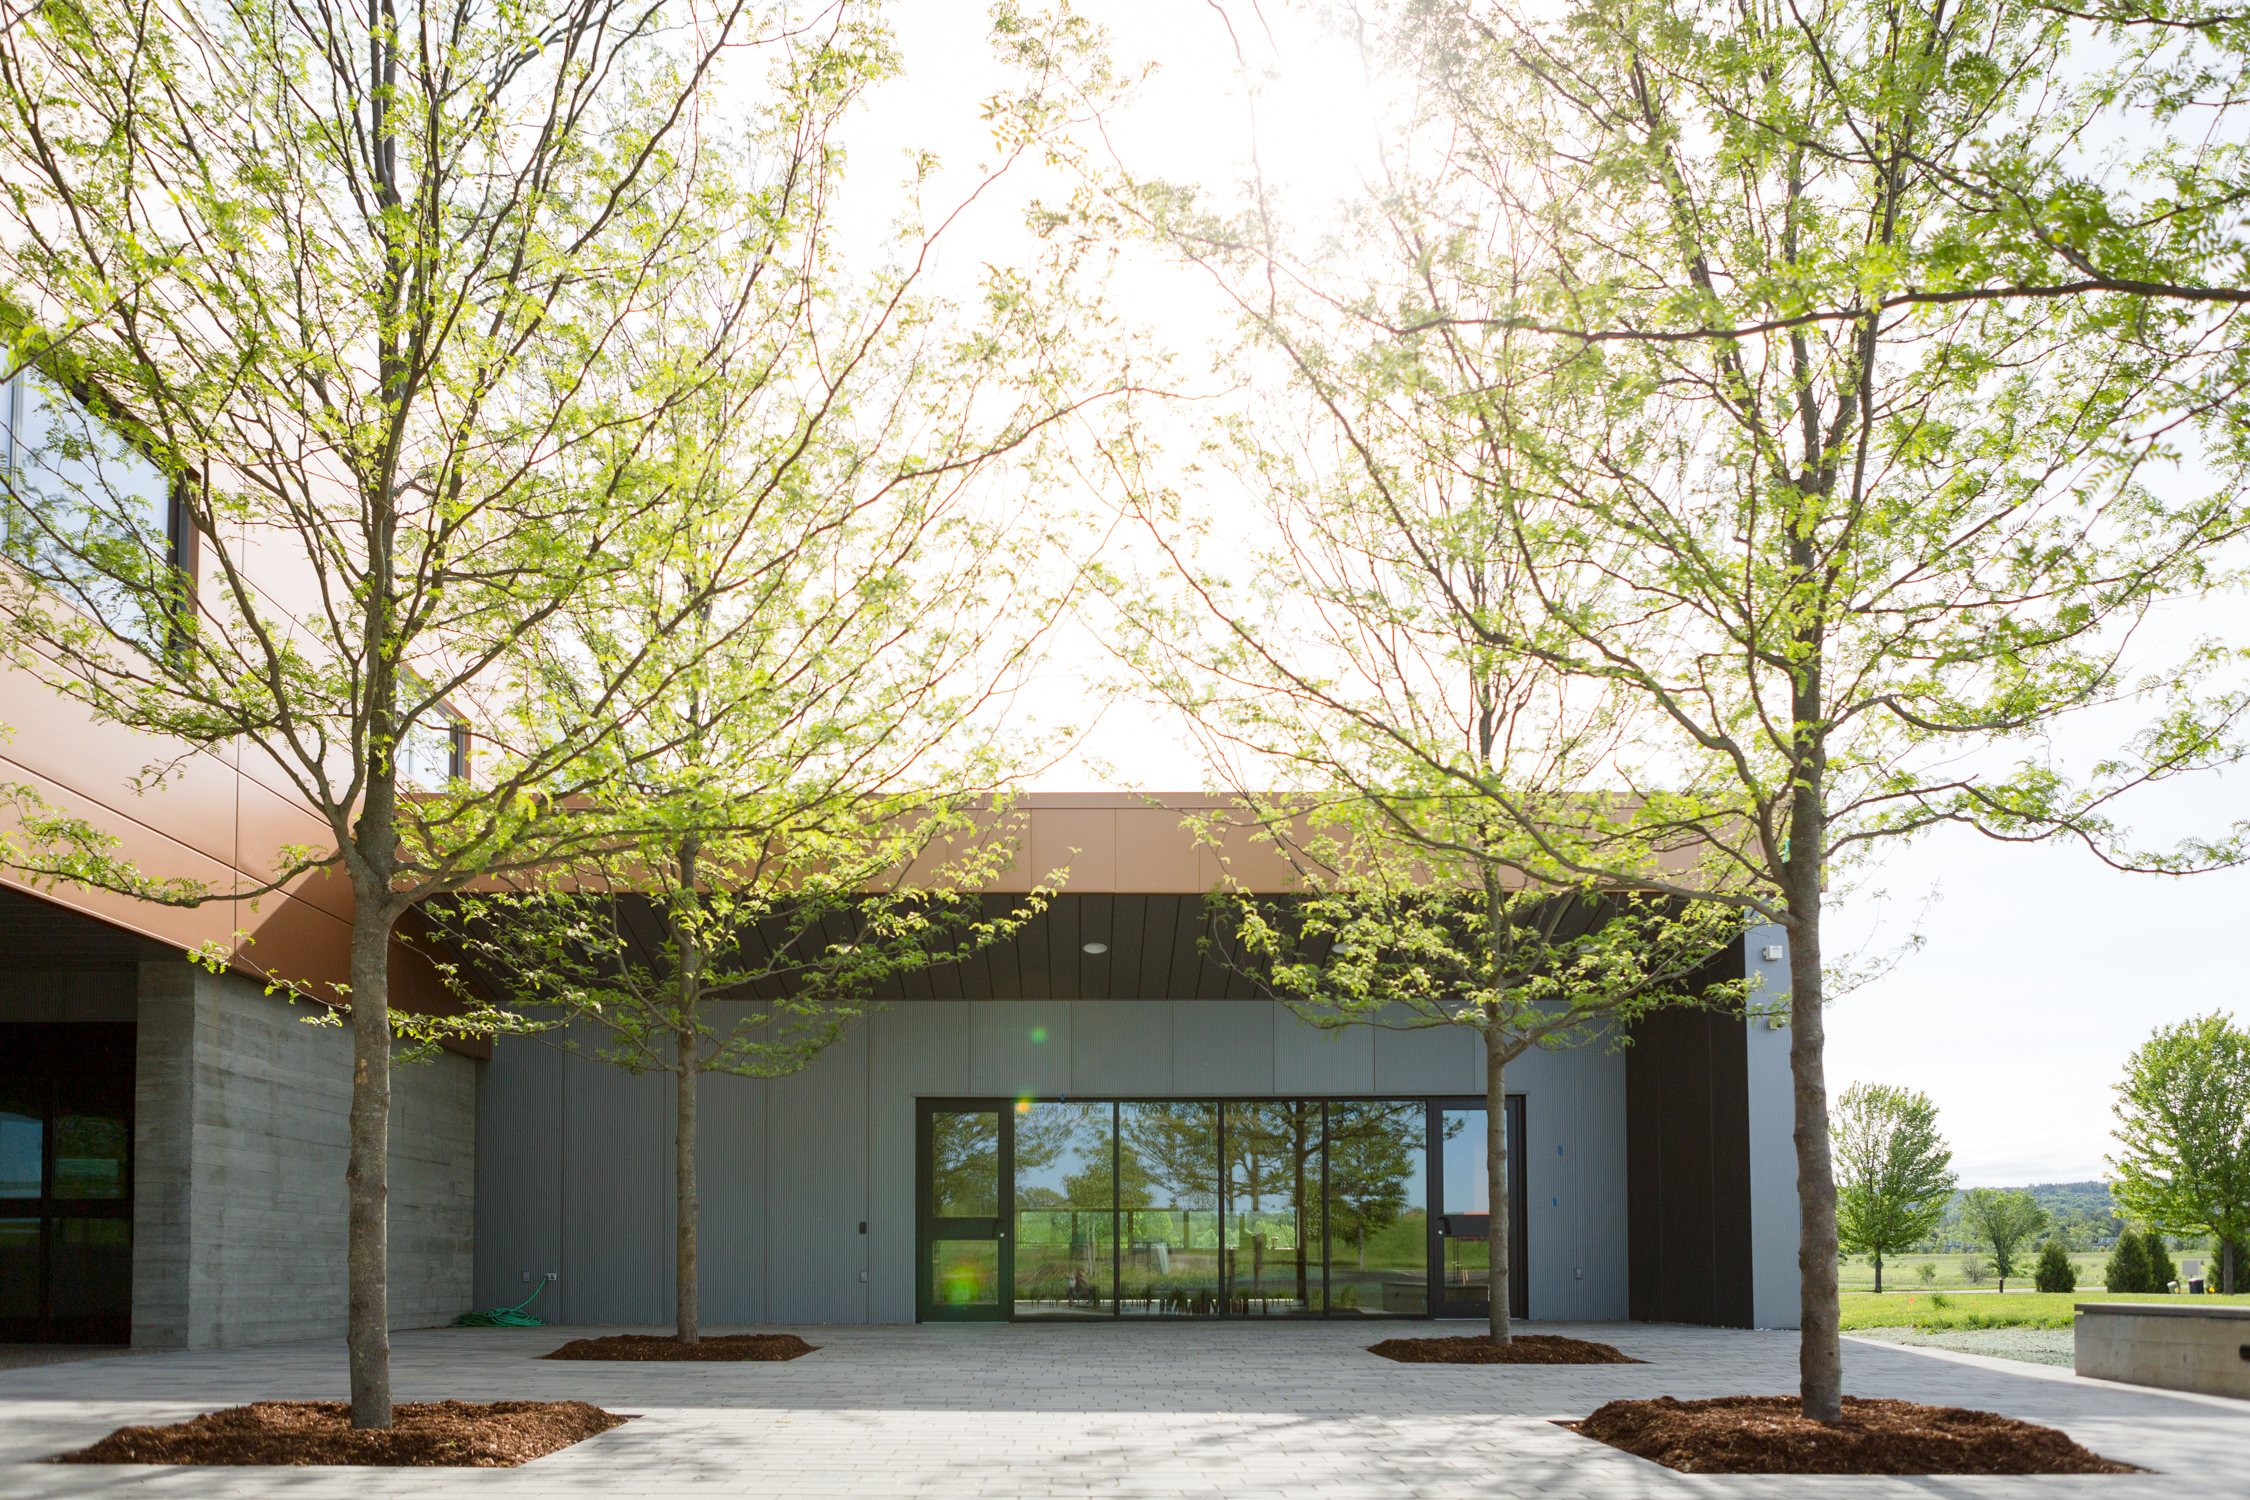 Photo of the exterior courtyard in Logic Supply building addition for Neagley & Chase Construction Company by Vermont architecture photographer Stina Booth of Studio SB.